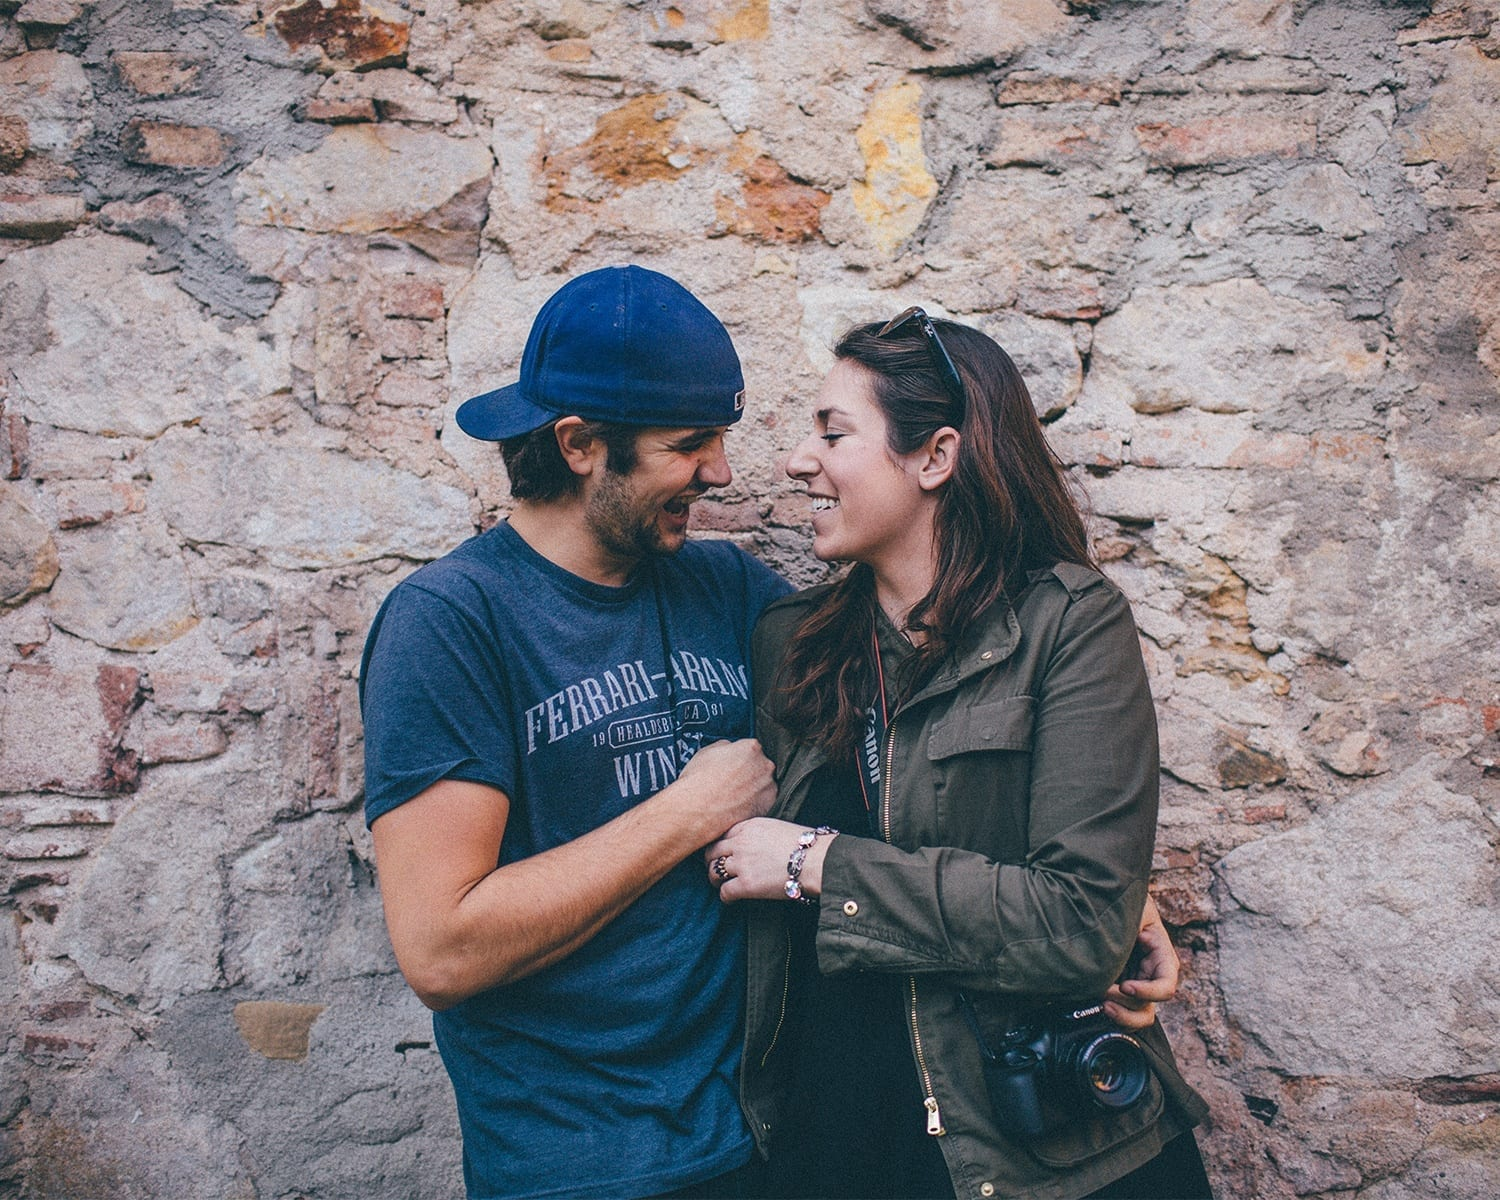 Ashley and Alex of In Pursuit of Adventure, smiling with their arms around each other.